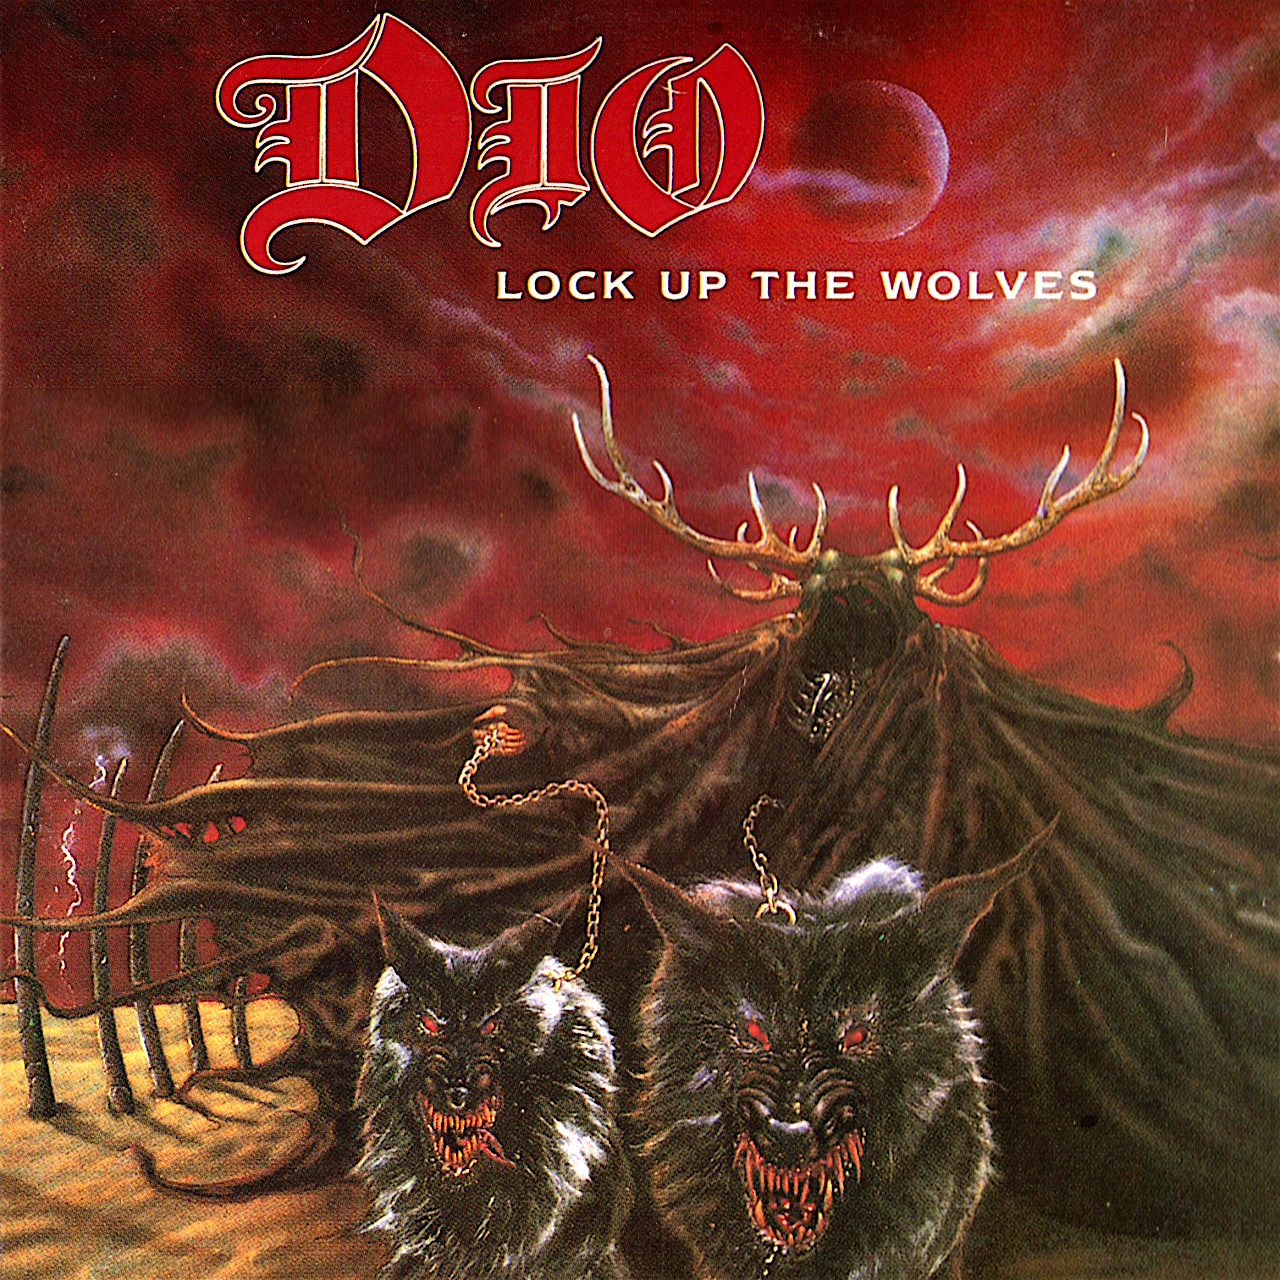 Lock Up Original Song Download: DIO Lock Up The Wolves Reviews